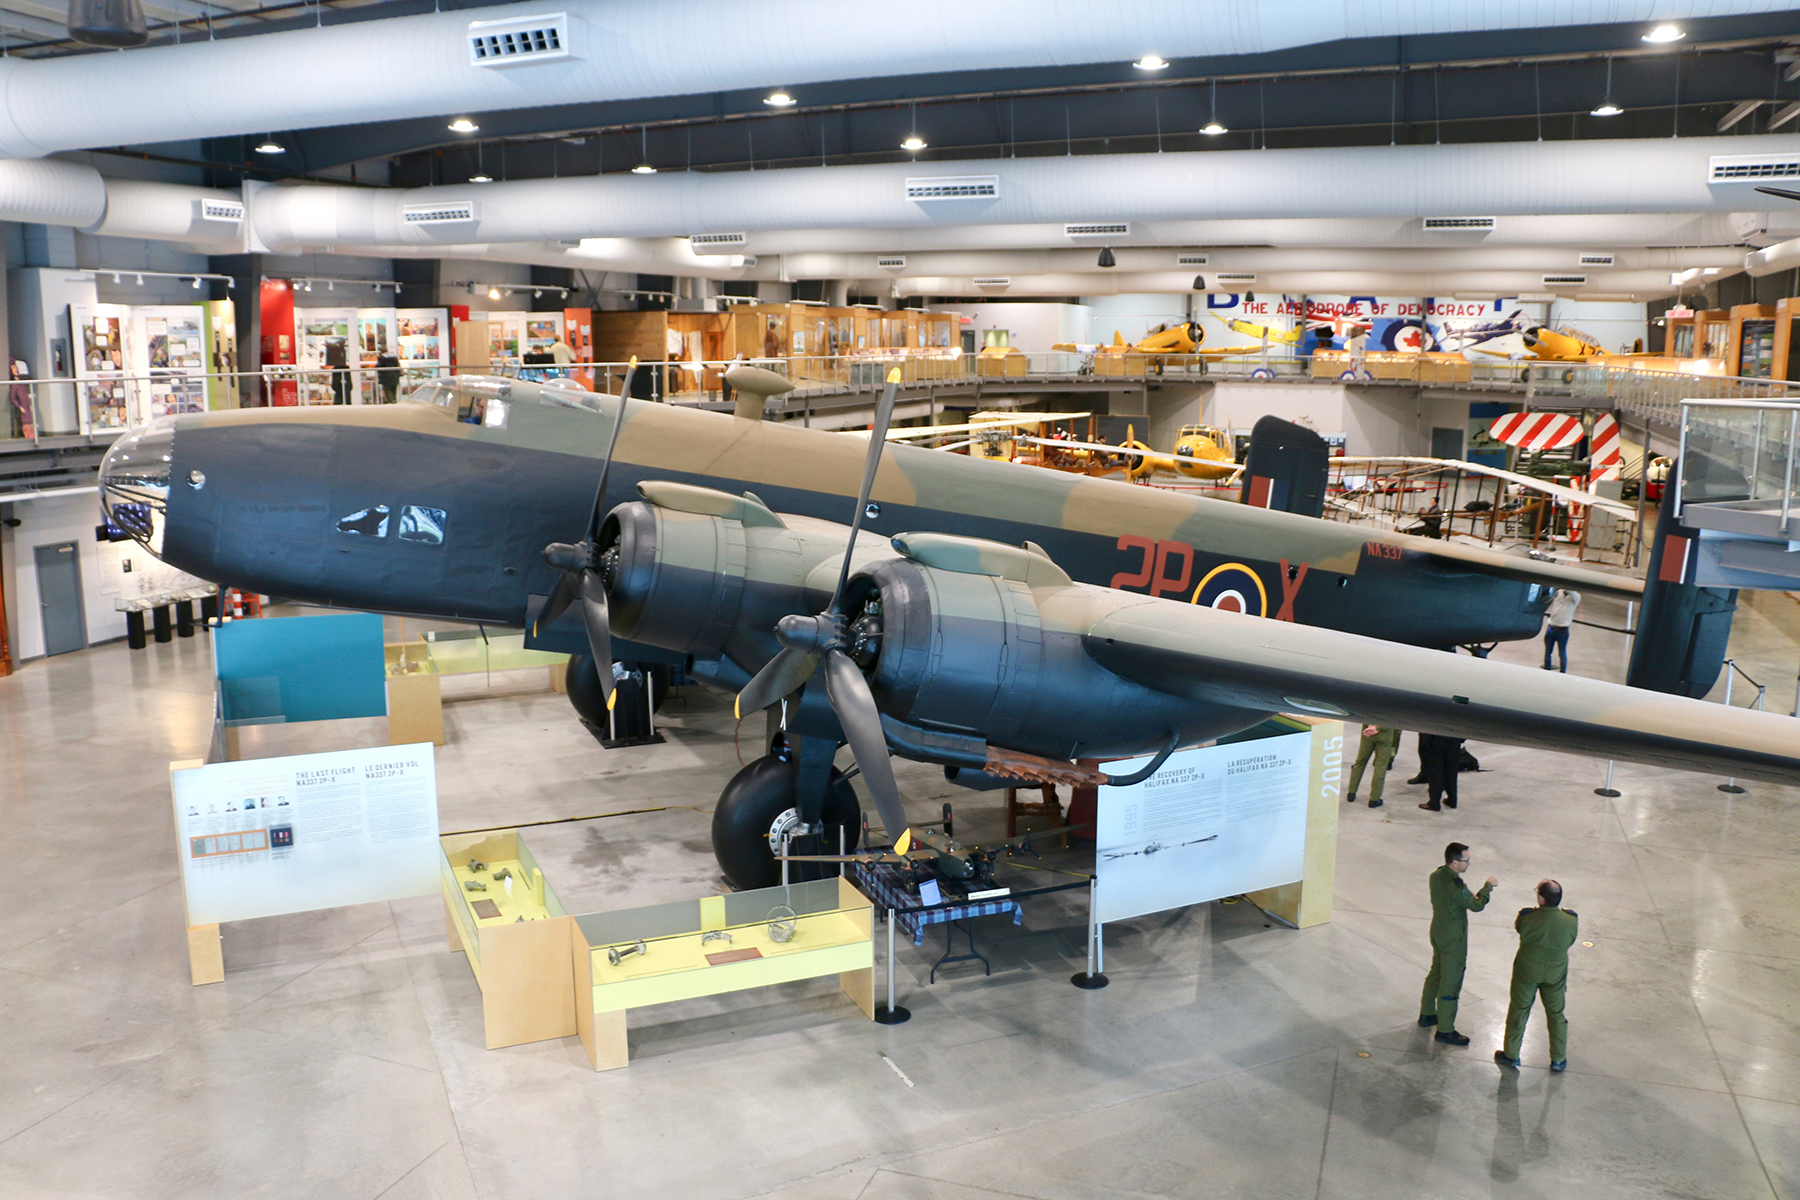 From the gallery, the Handley Page Halifax Heavy Bomber dominates the display floor at the National Air Force Museum of Canada in Trenton, Ontario. PHOTO: Makala Chapman